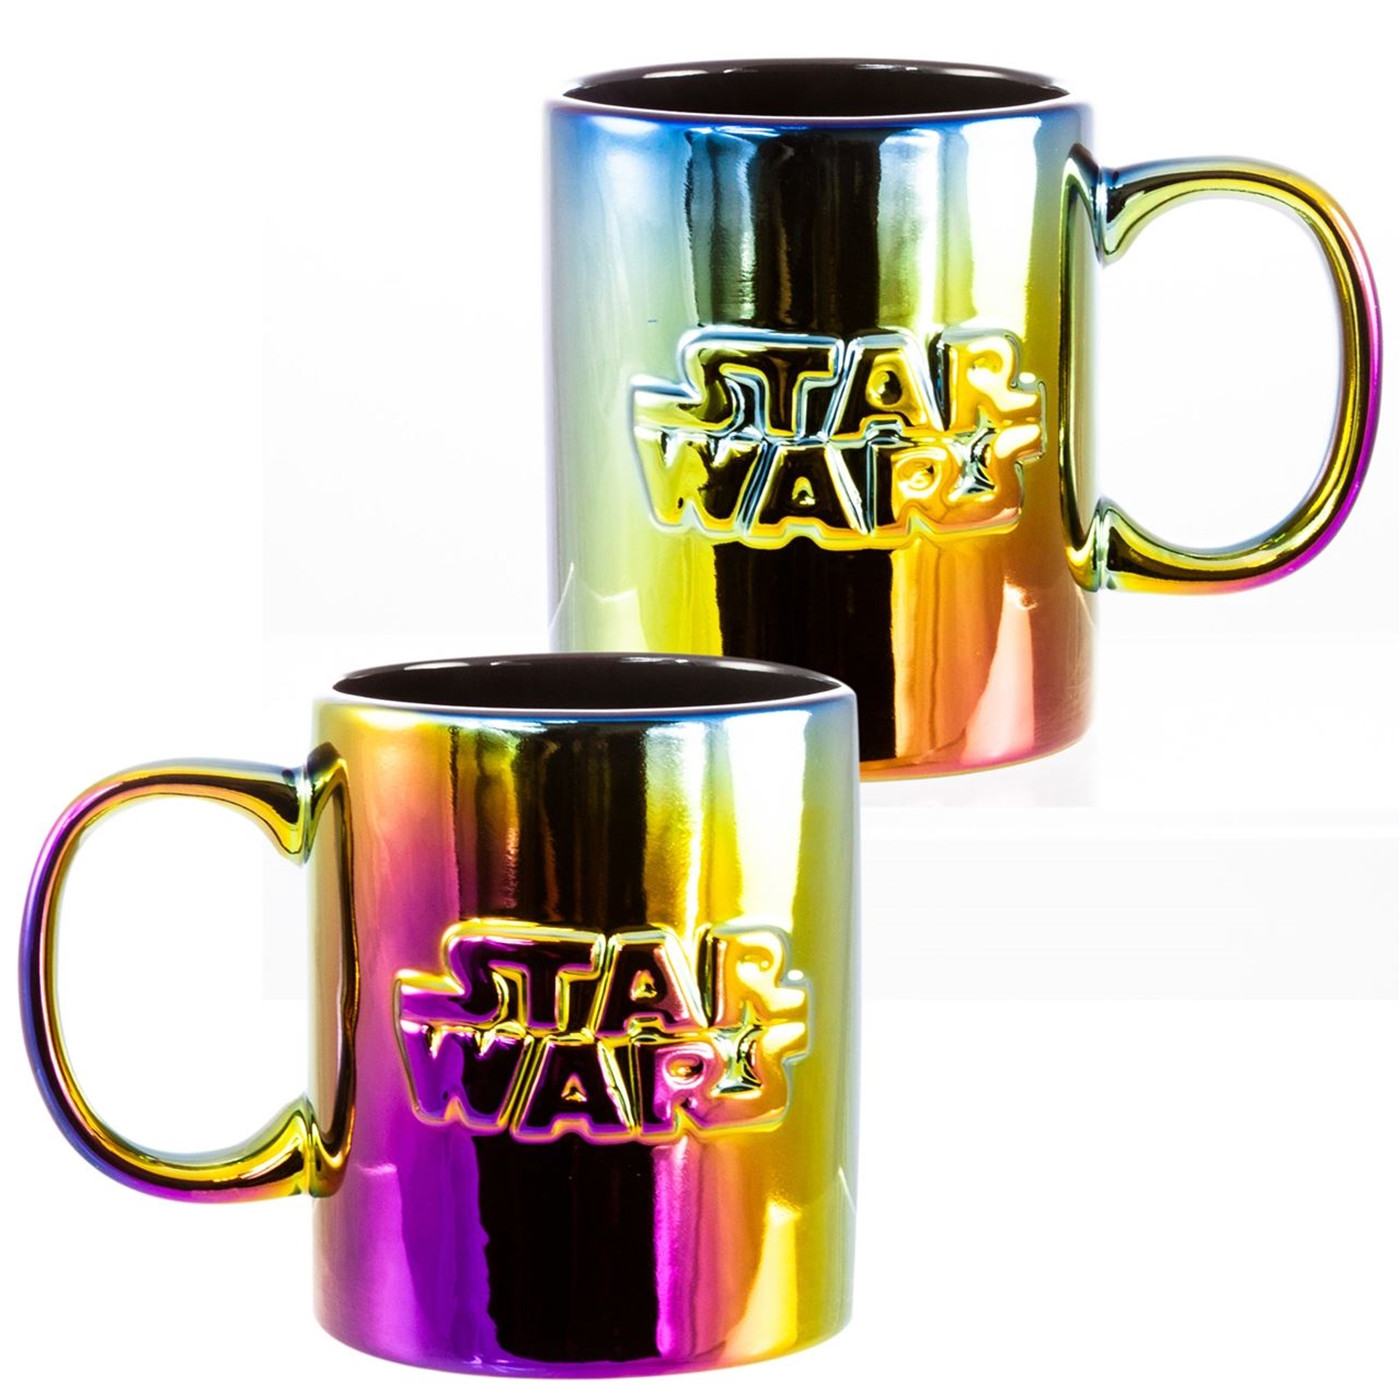 Star Wars Iridescent Logo 11oz Mug